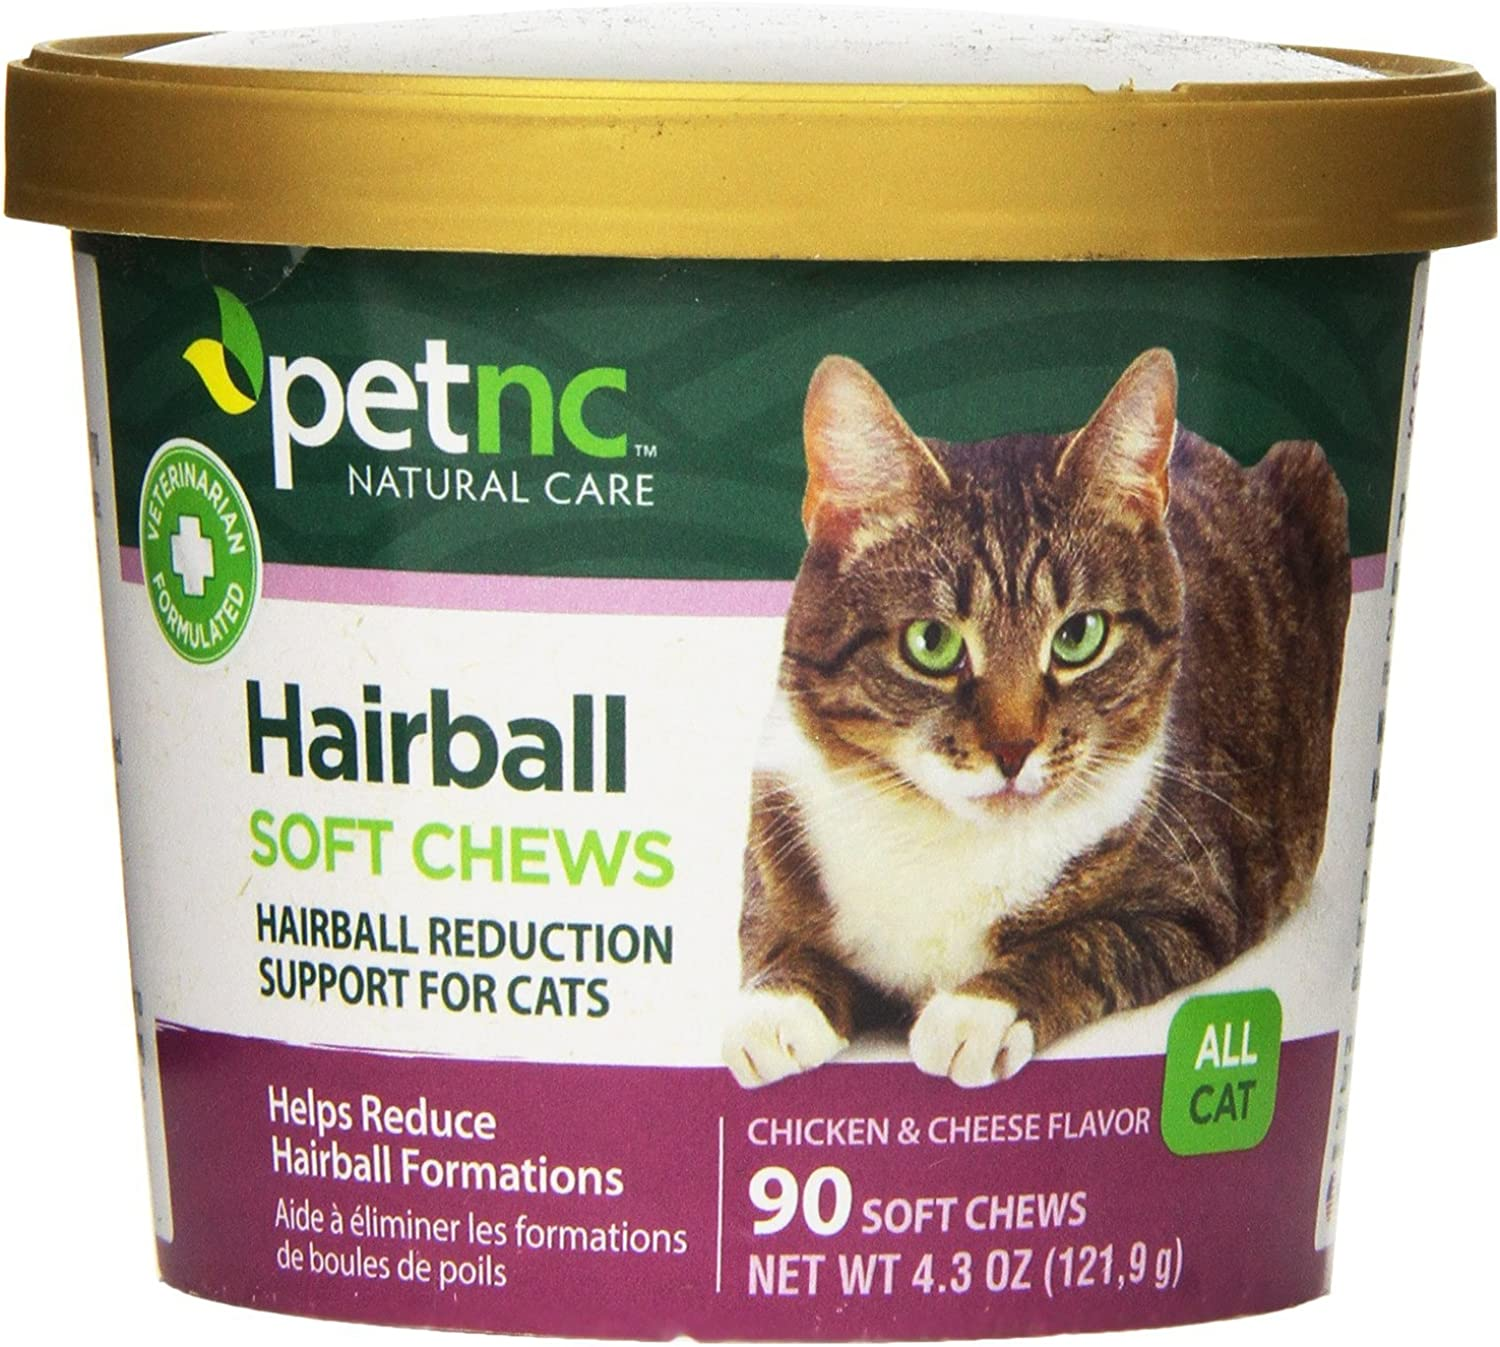 PetNC Natural Care Hairball Soft Chews for Cats, 90 Count (Pack of 2)